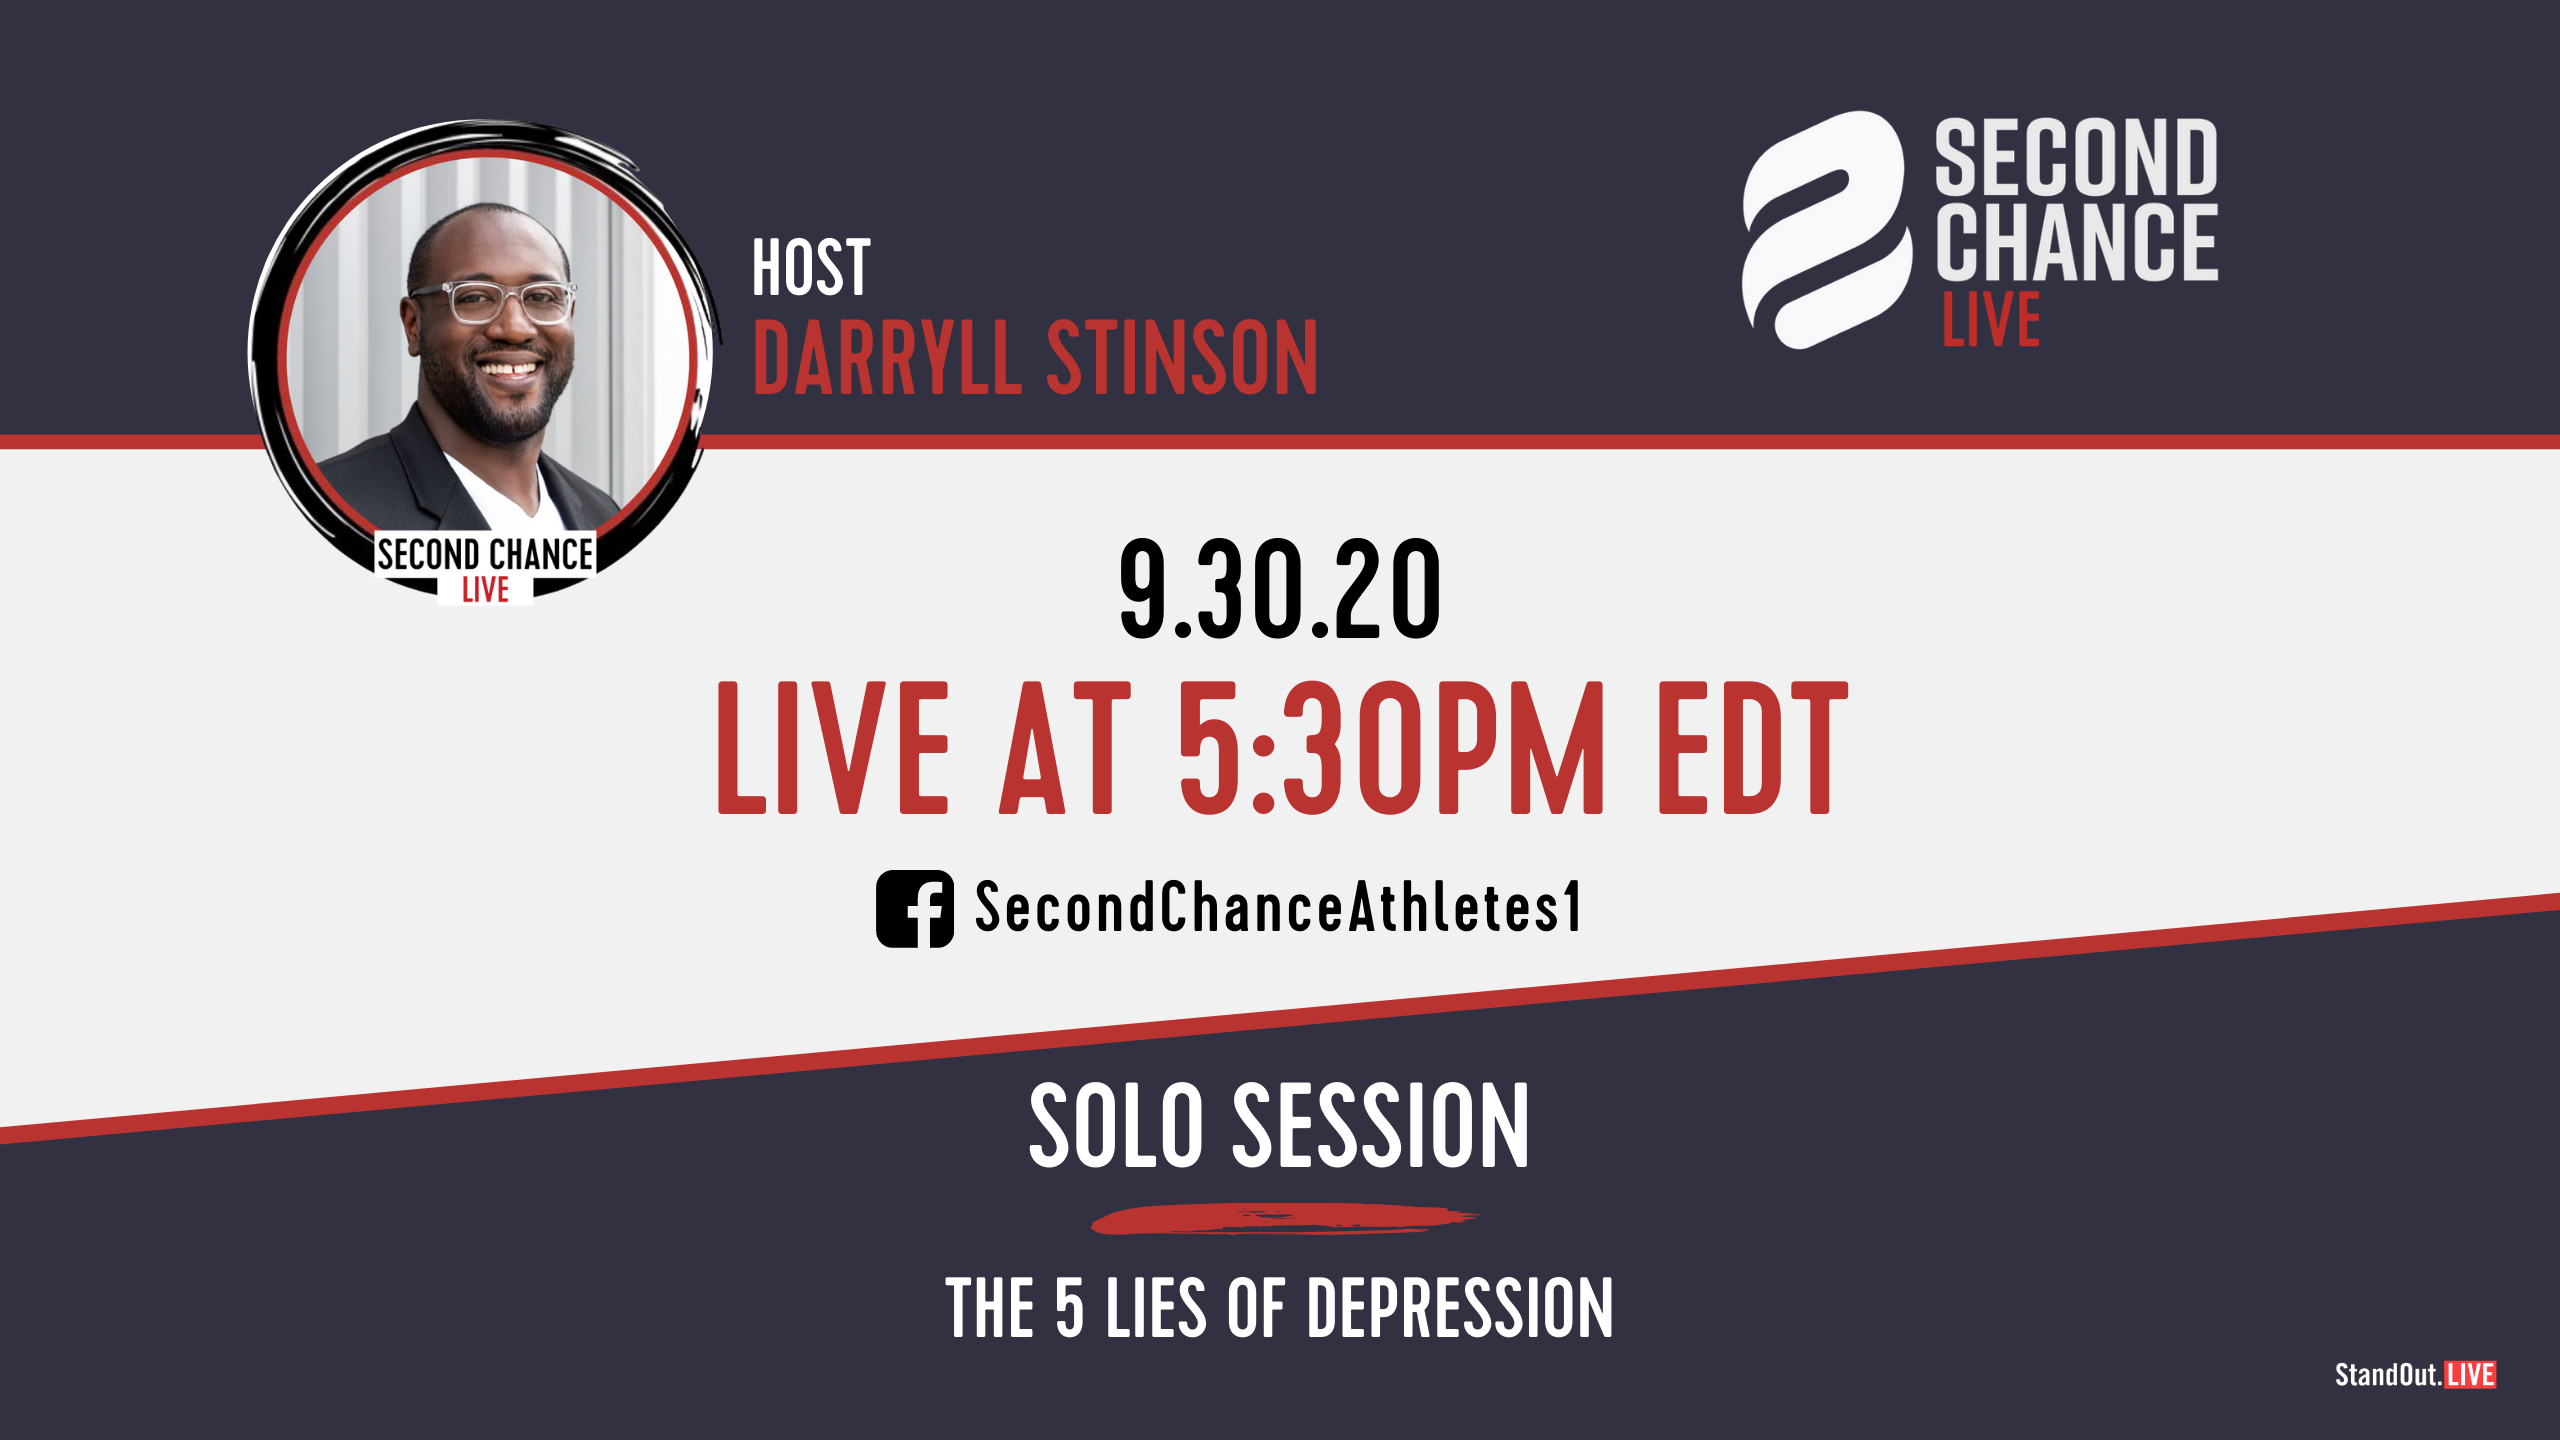 Second Chance LIVE – Solo Session